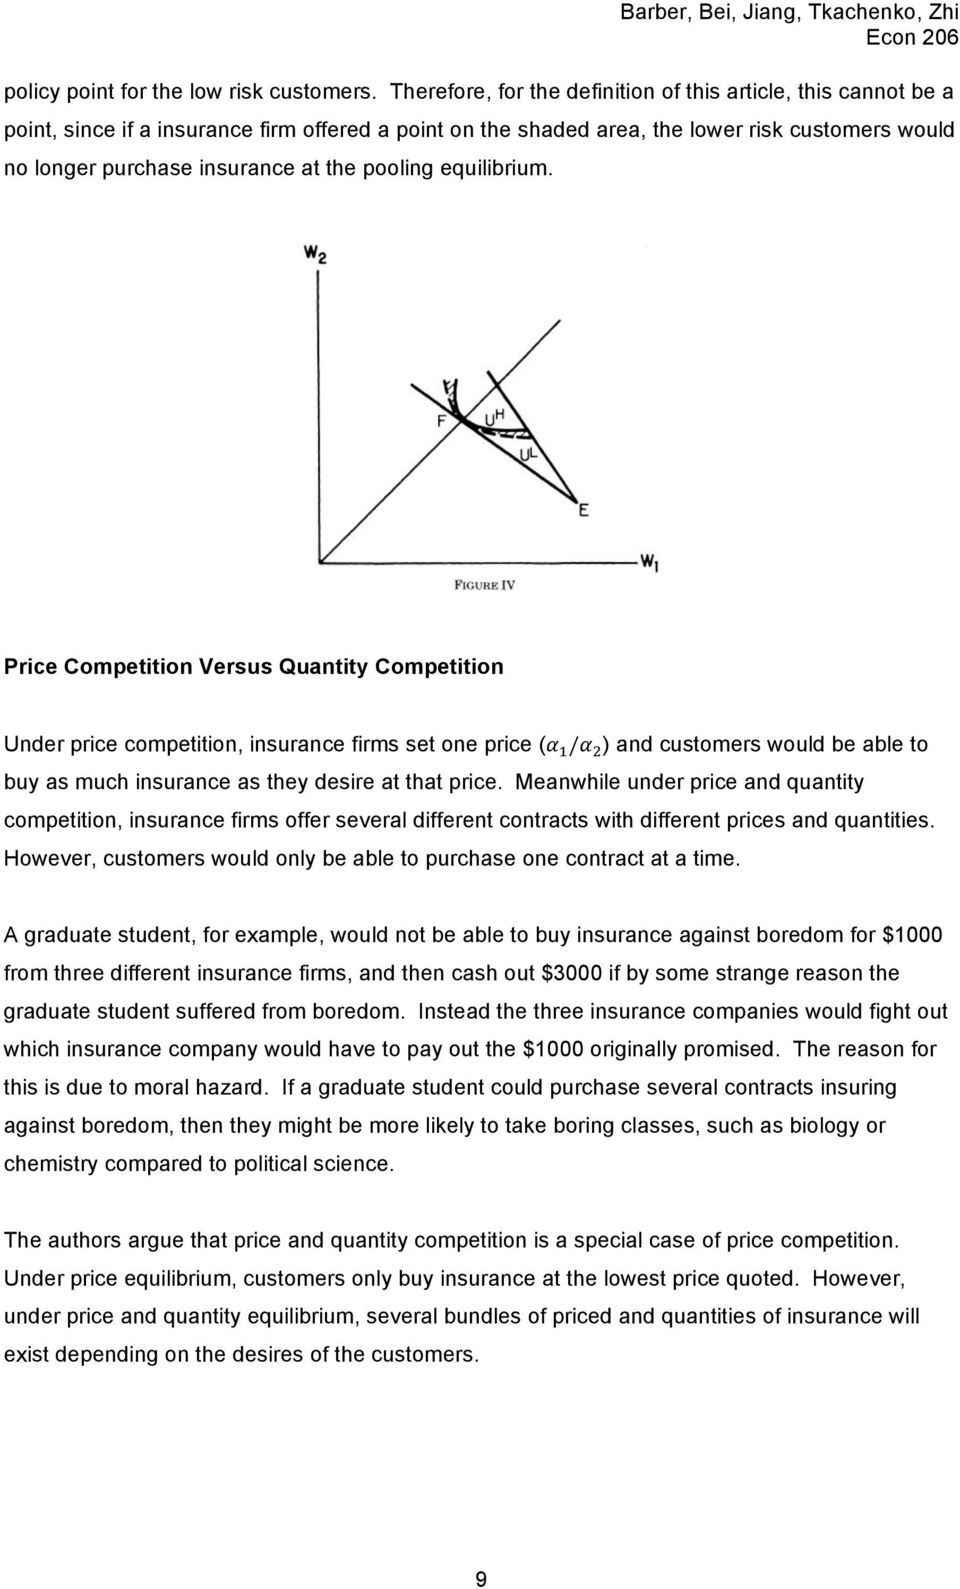 pooling equilibrium. Price Competition Versus Quantity Competition Under price competition, insurance firms set one price (!! /!